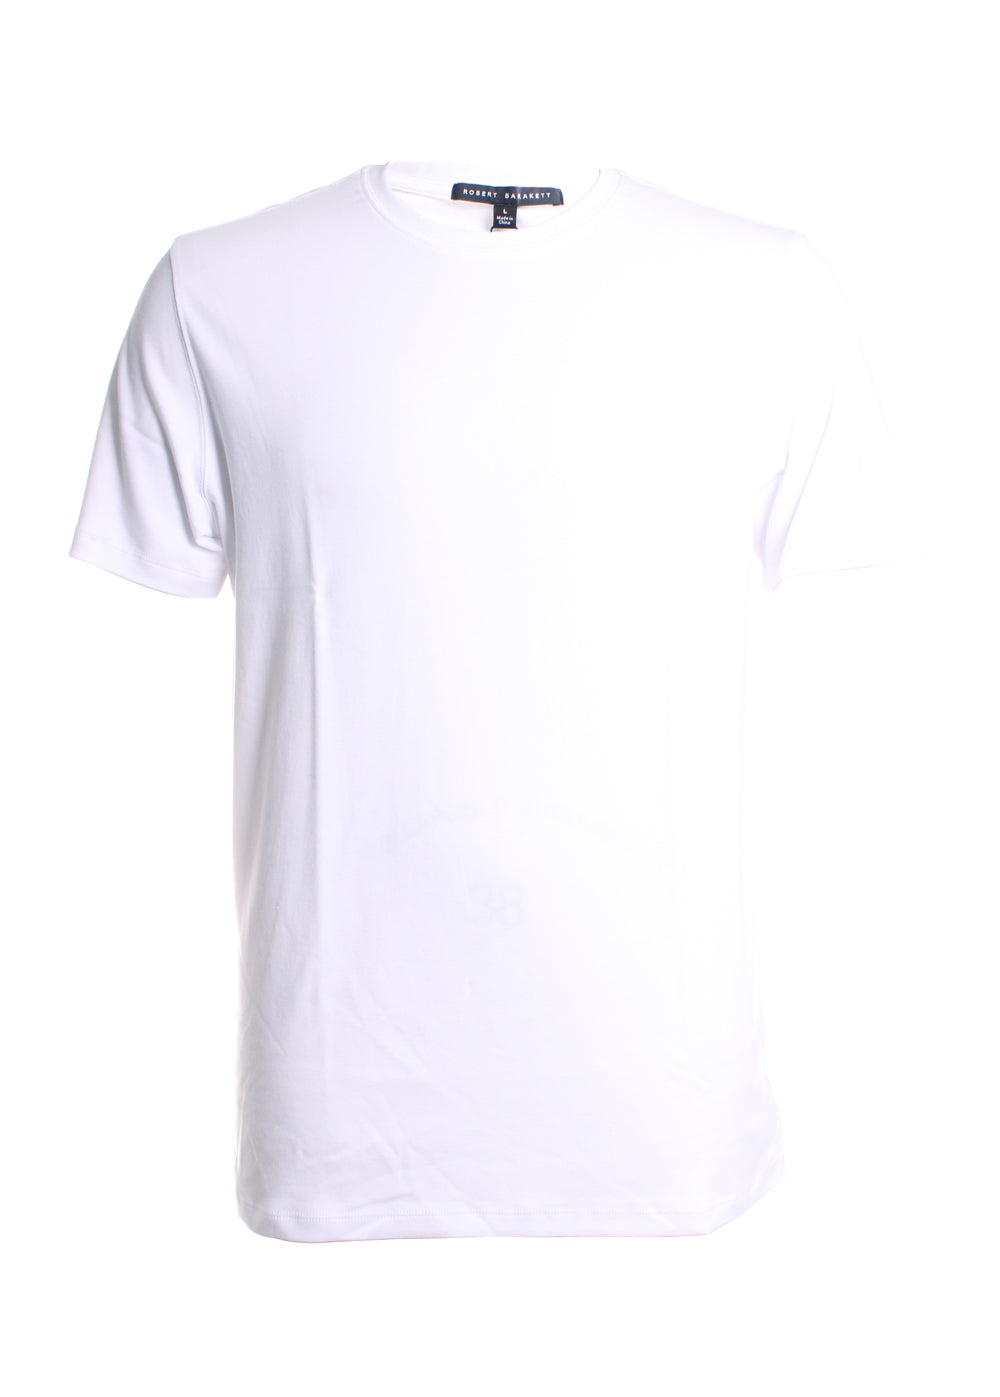 Robert Barakett Georgia Crew Neck T-Shirt in White